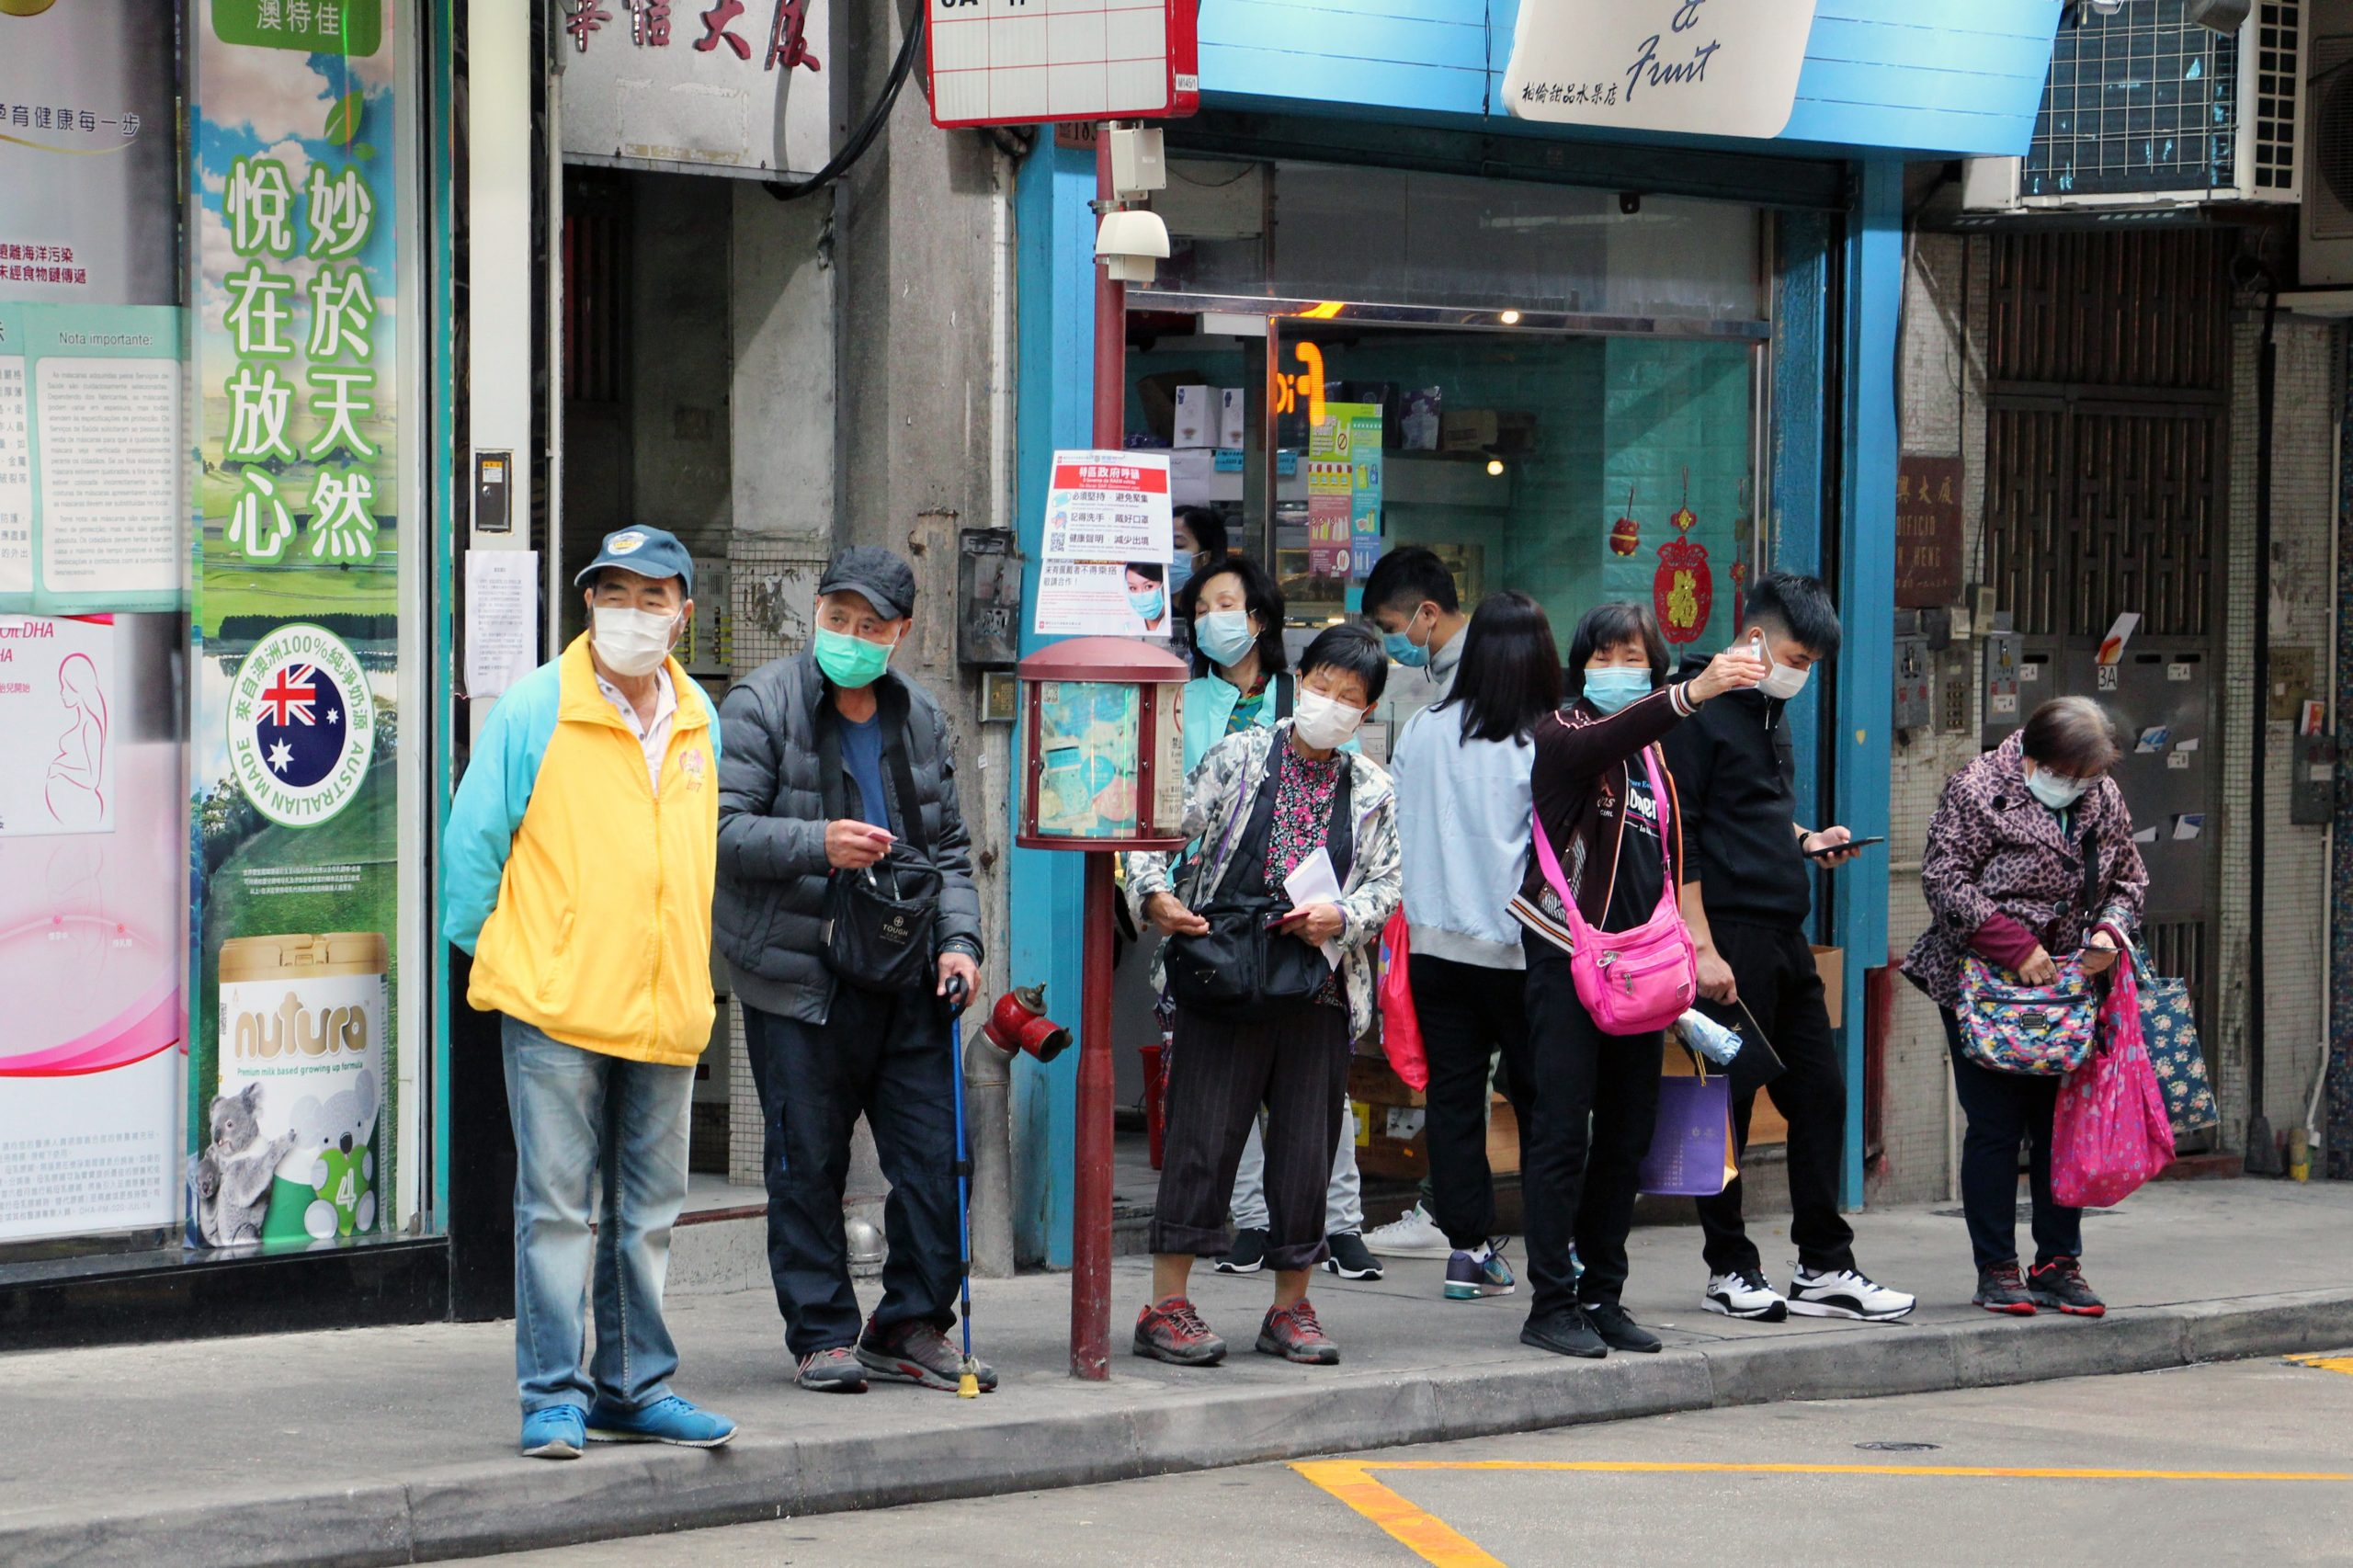 Elderlies wearing face masks at a Bus stop in Macau, China in the surroundings of the public hospital. (RW)